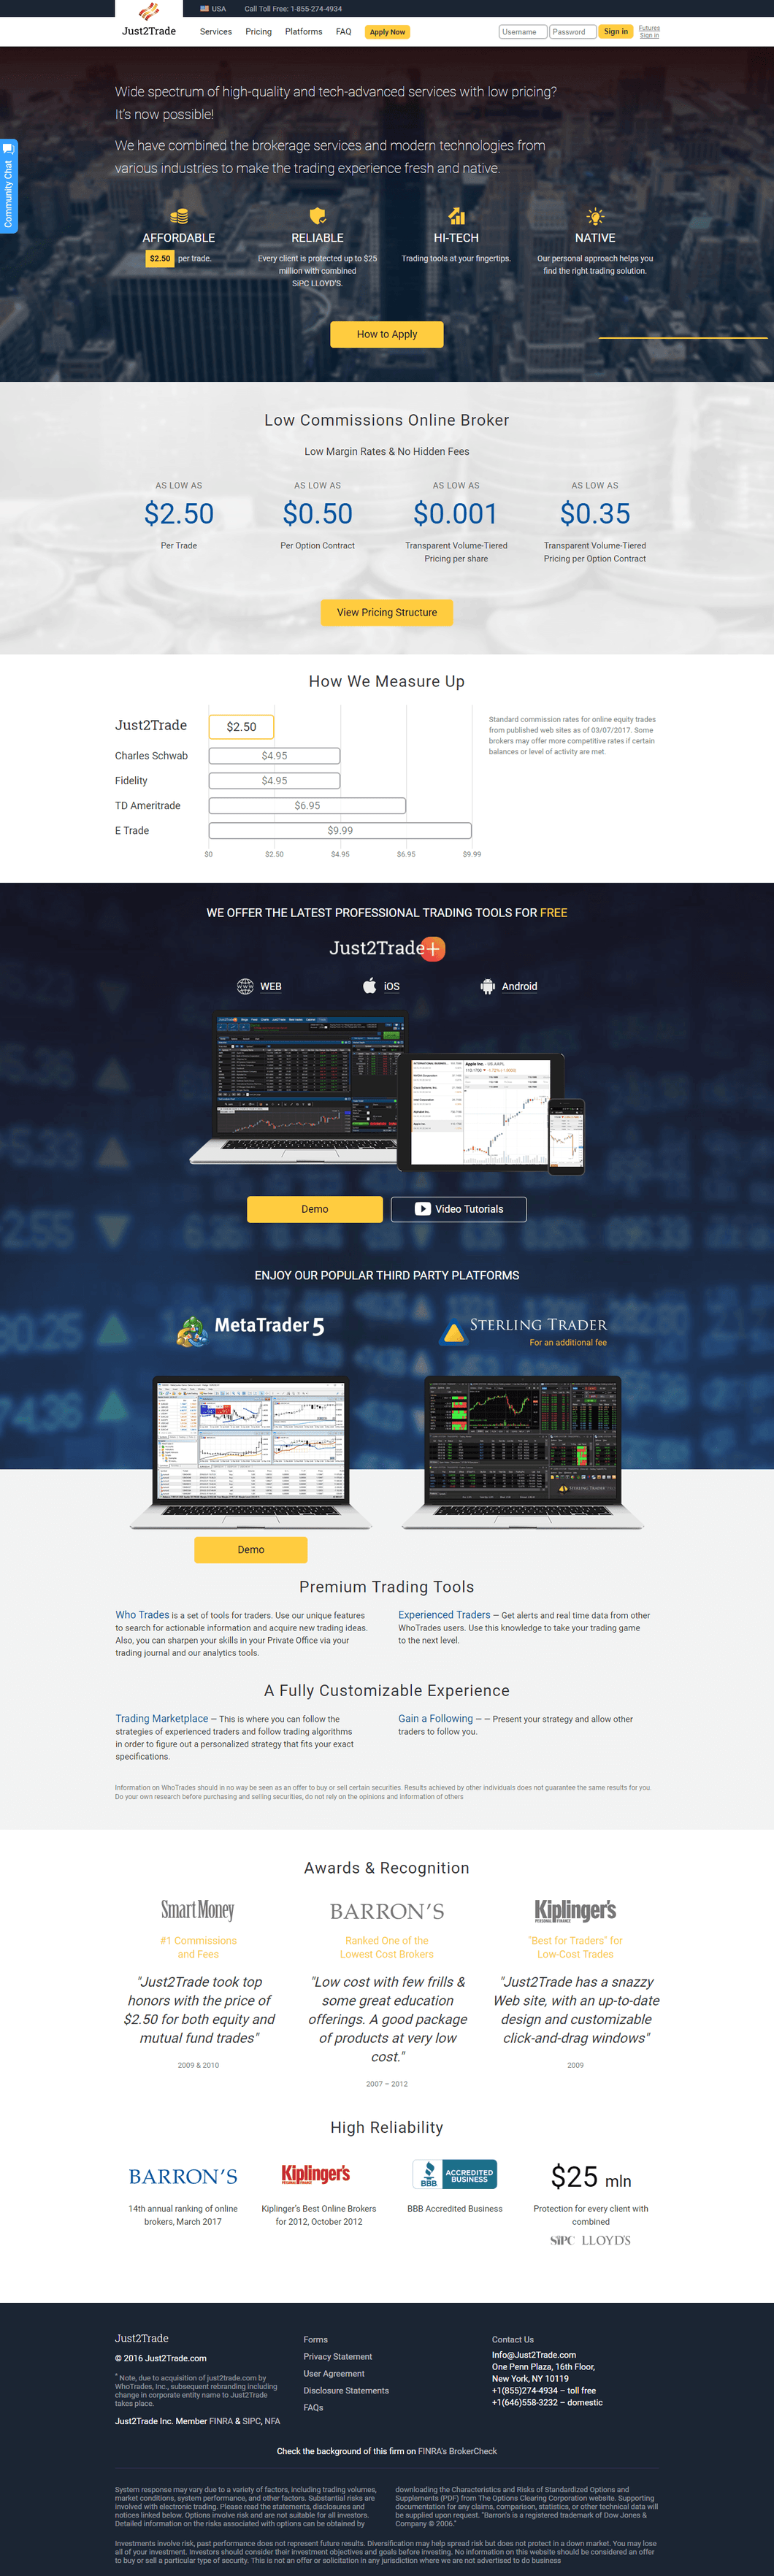 Just2Trade is built for active traders, offering super affordable $2.50 stock trades, but with a platform that may be too bare bones for sophisticated traders. Still, it's a good low-cost option for beginner day traders or the super cost-conscious.